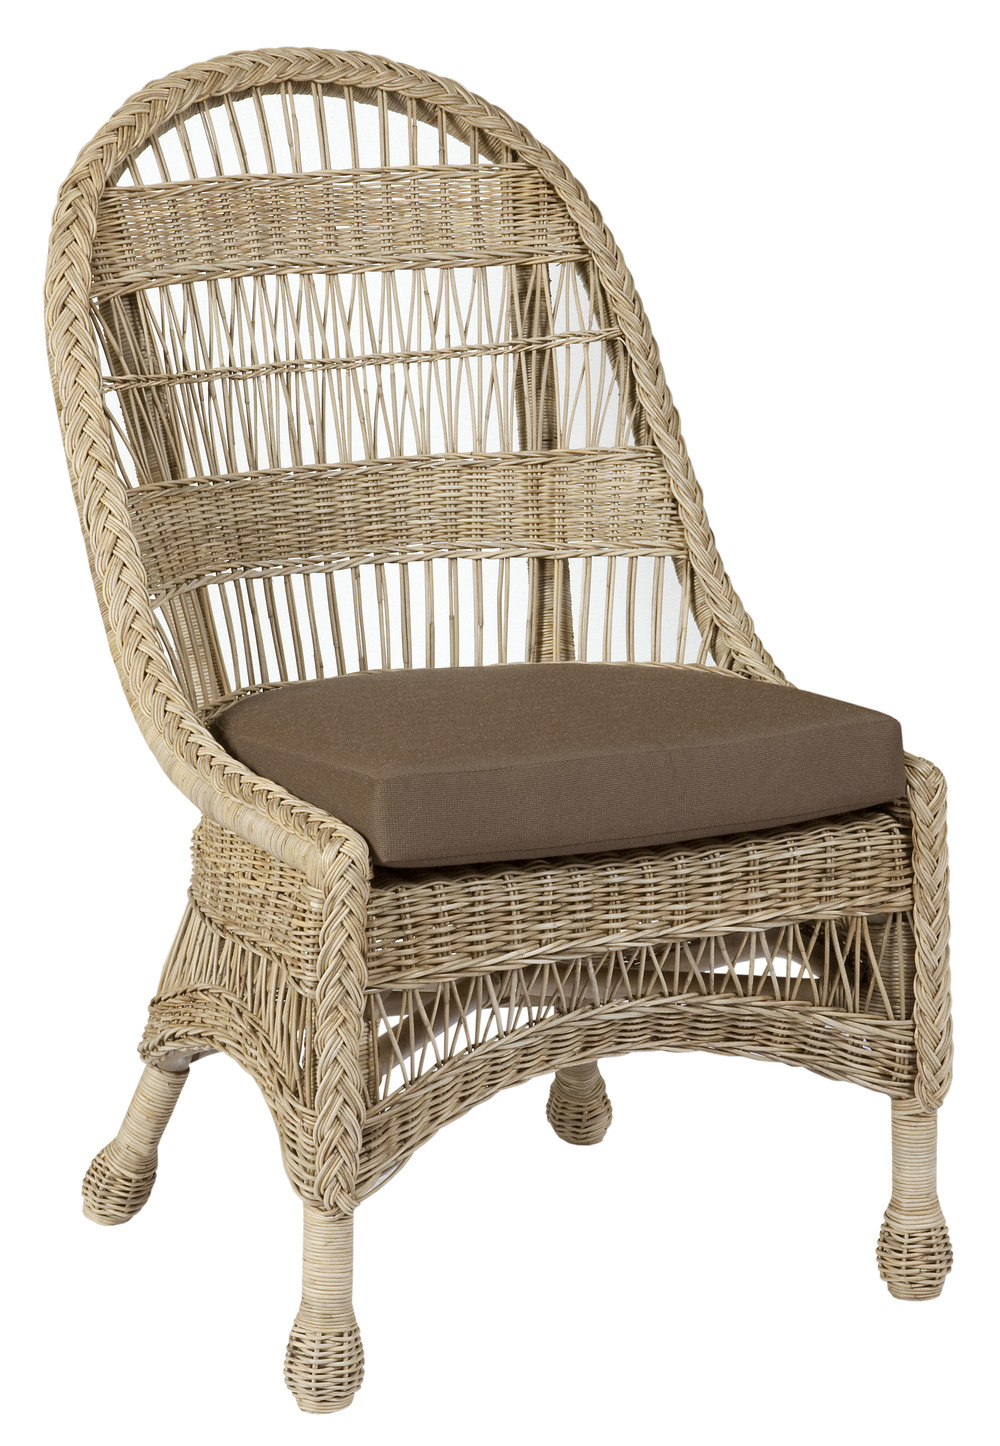 Woodbridge Furniture Company - Palm Dining Chair